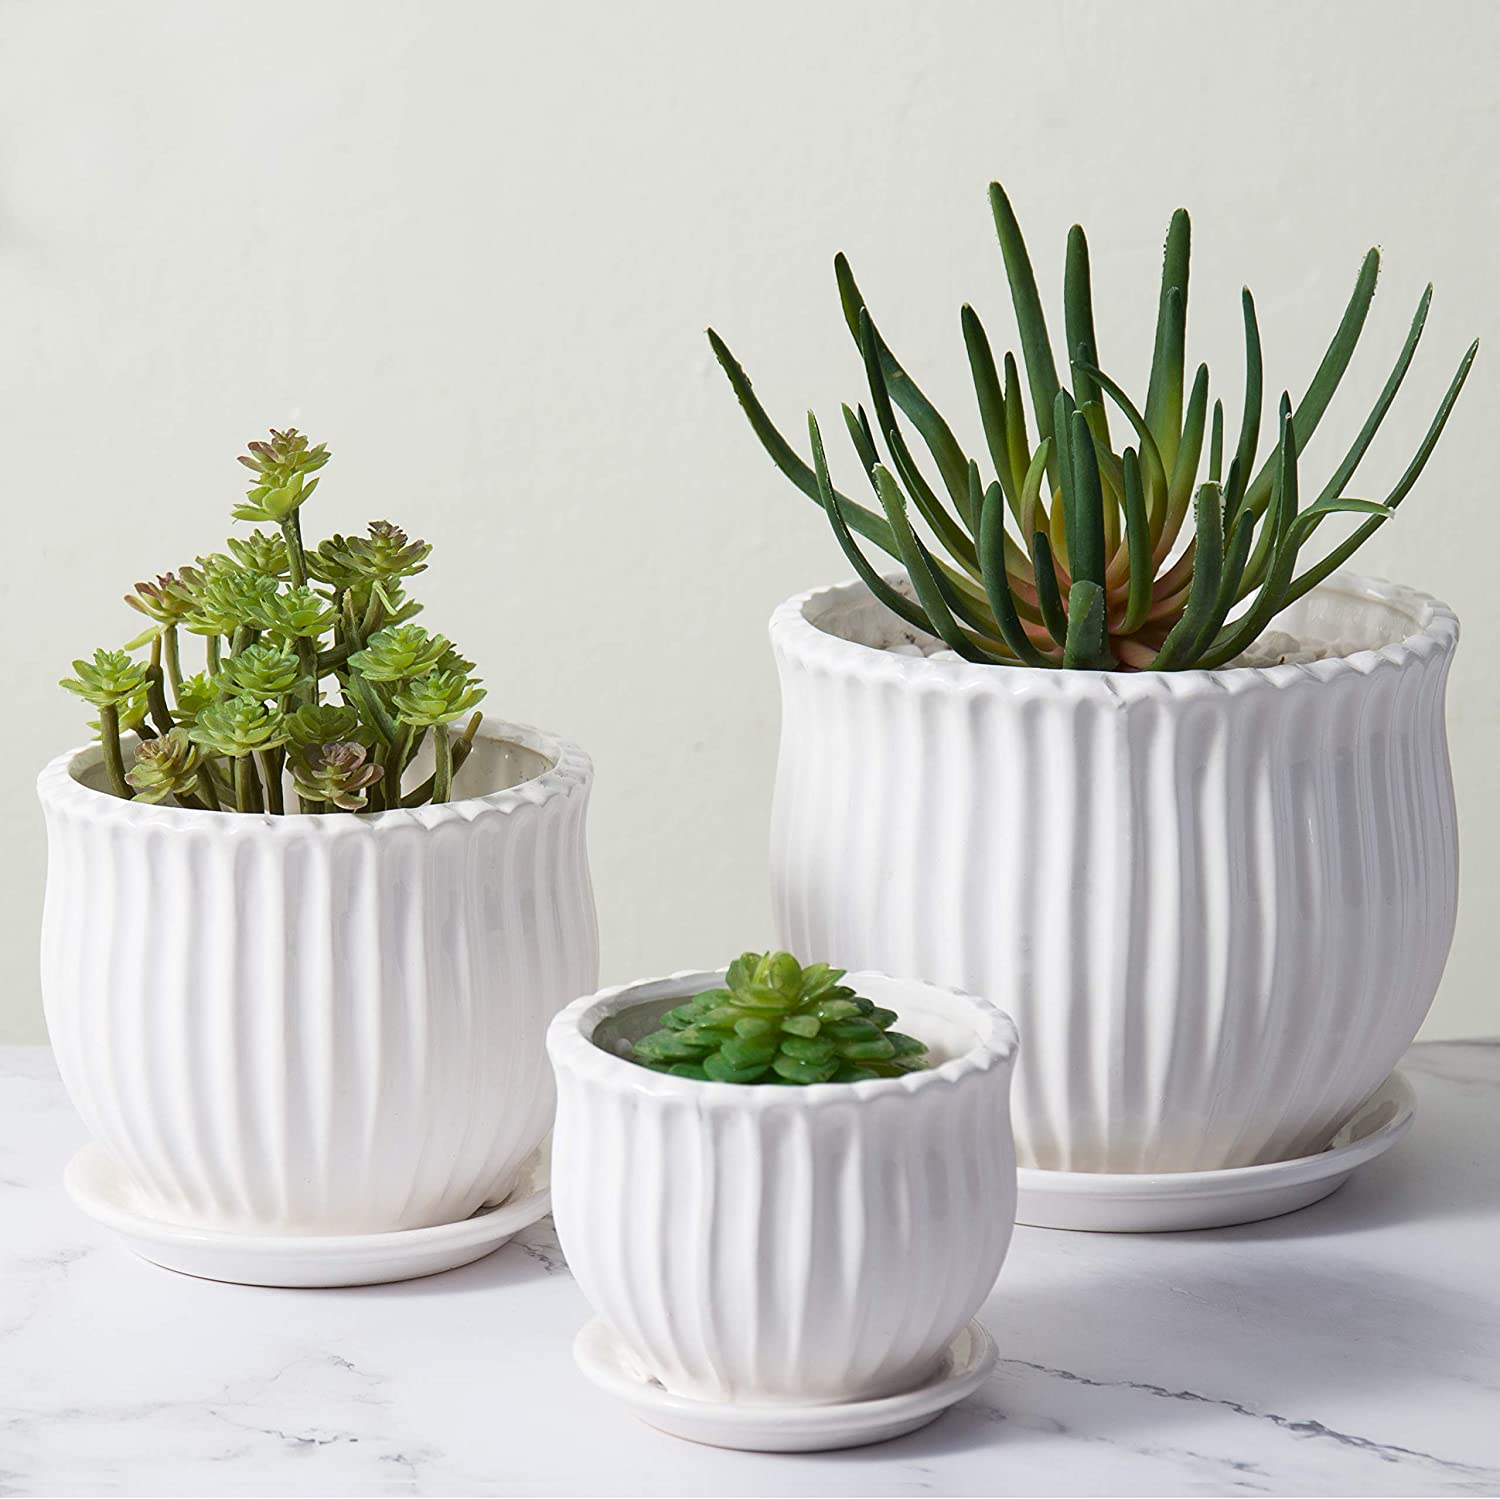 MyGift Fluted White Ceramic Pots with Saucers, Set of 3